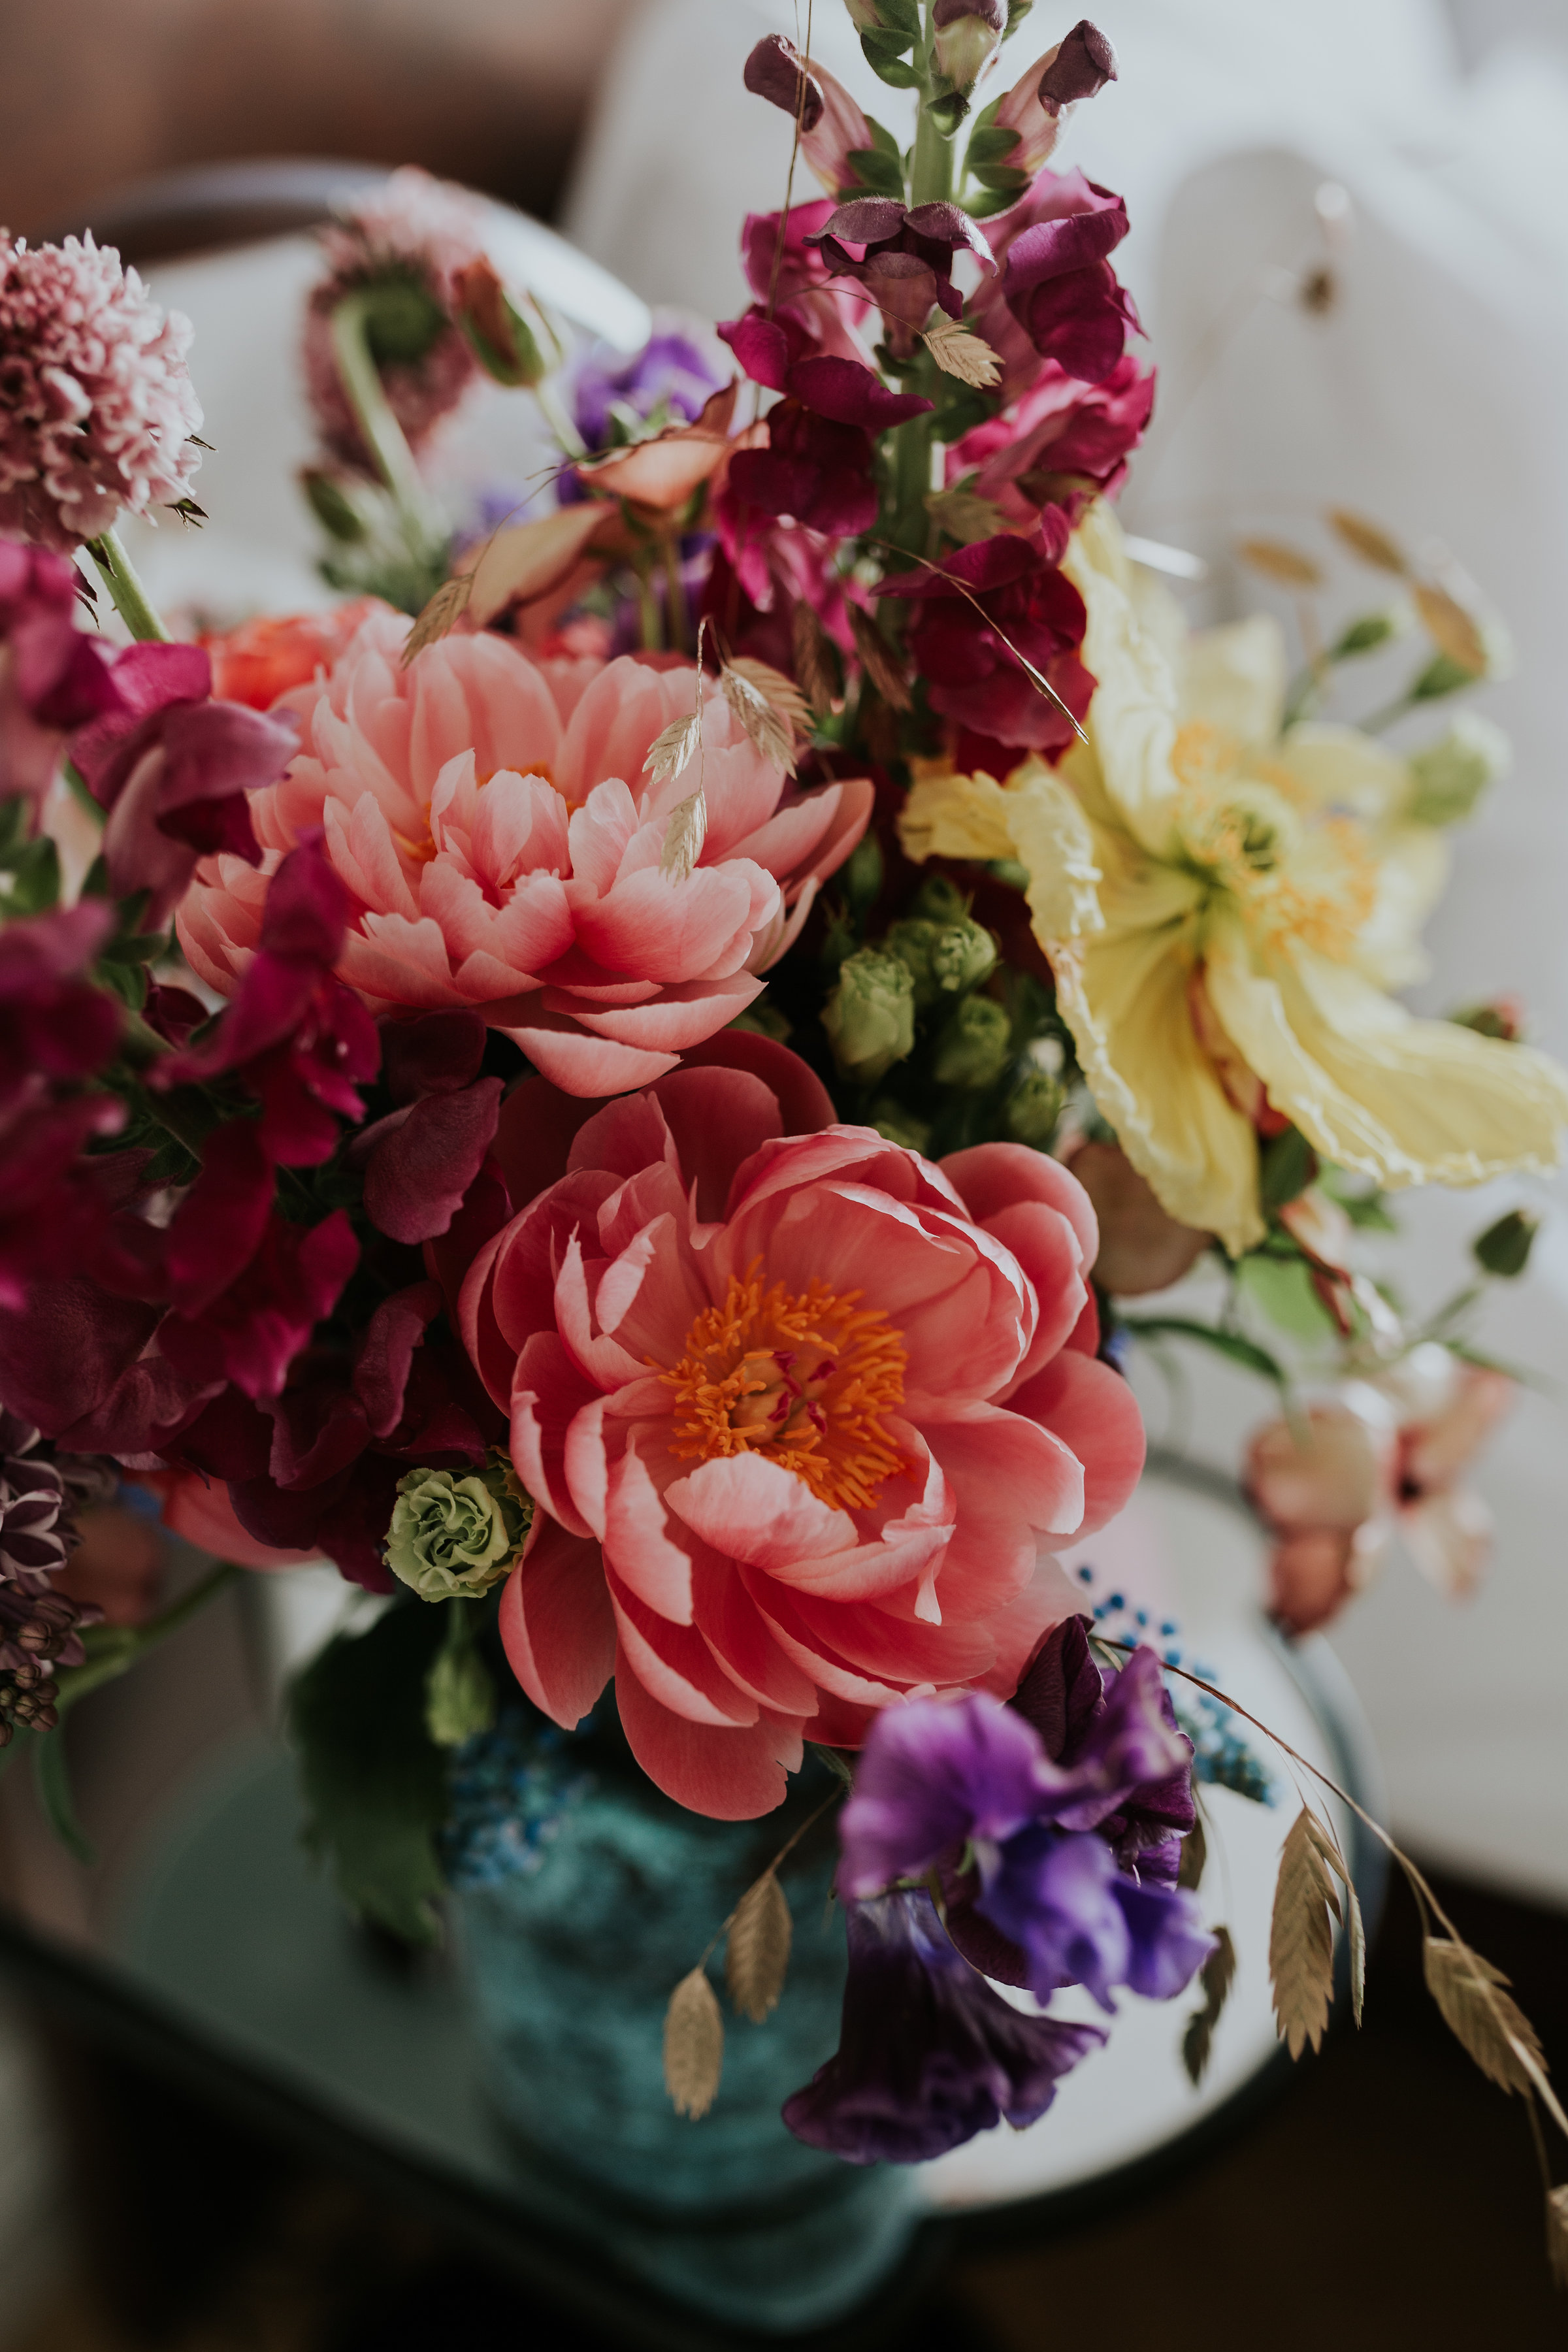 A.P Bloem florist bloemist evenement bloemen amsterdam luxury golden age guirlande garland florals pulitzer wedding bruiloft trouwen marriage styling liefde peonies poppies papaver goudeneeuw stilllife dutch